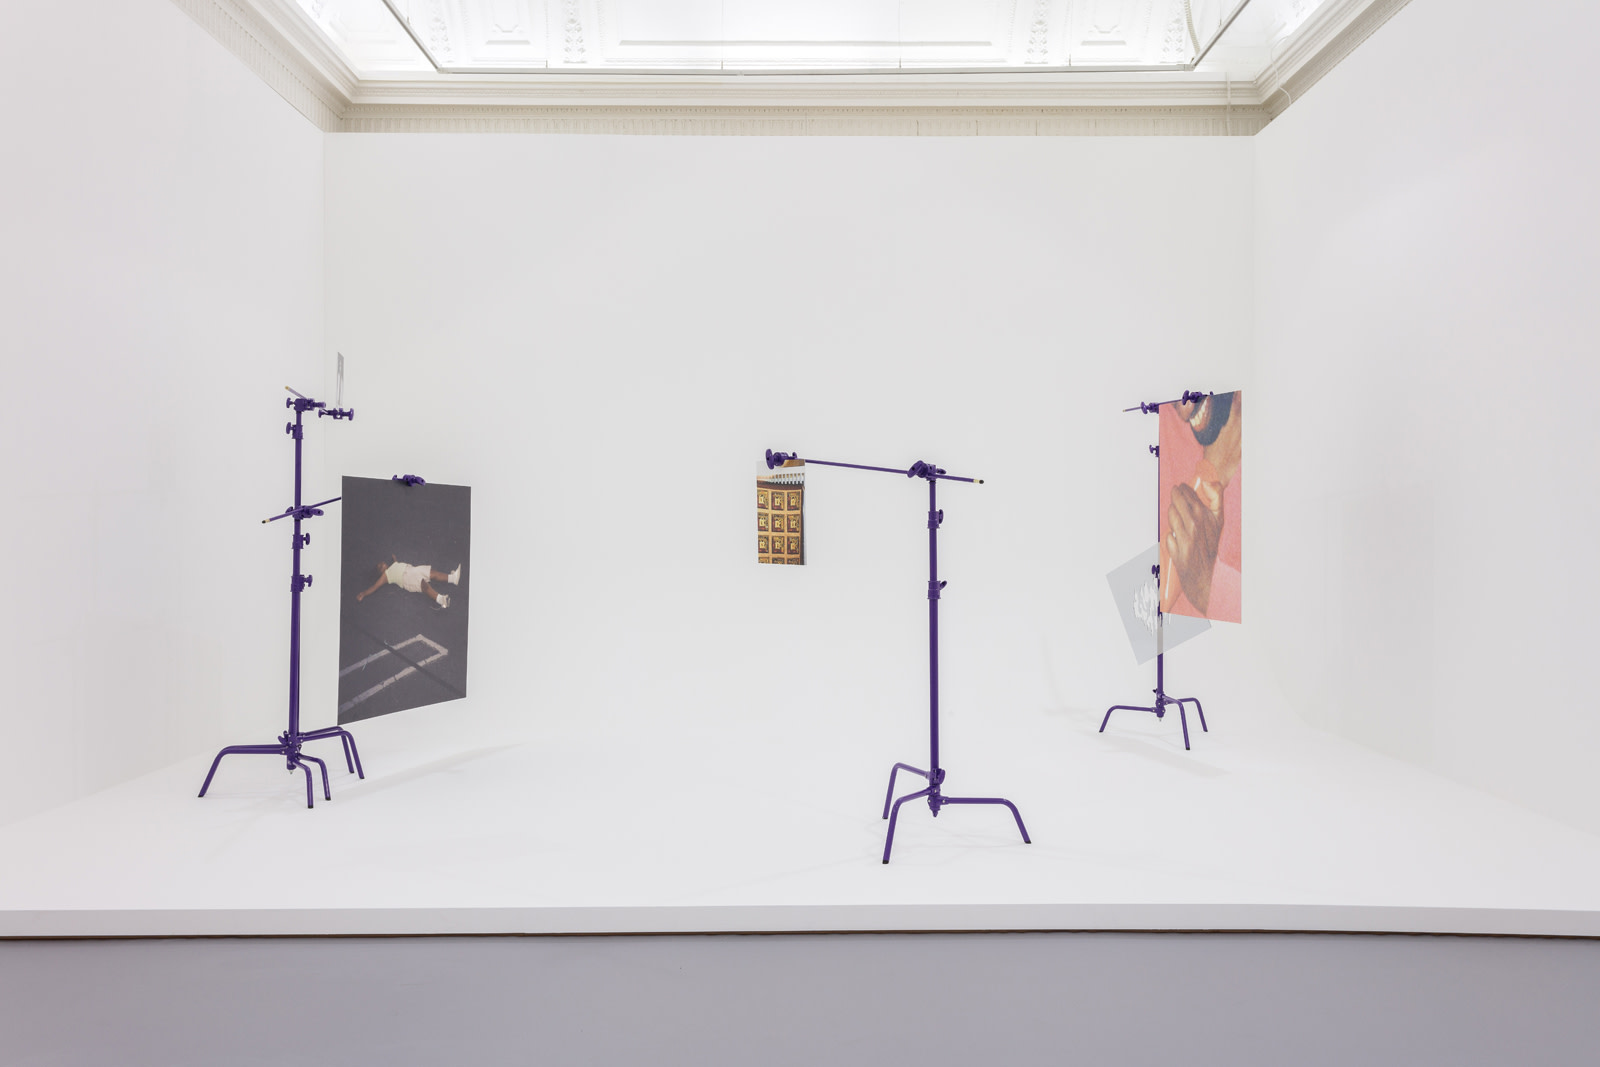 <p>Installation view, Fact & Trouble,&#160;ICA London, 20 April - 19 June 2016</p>